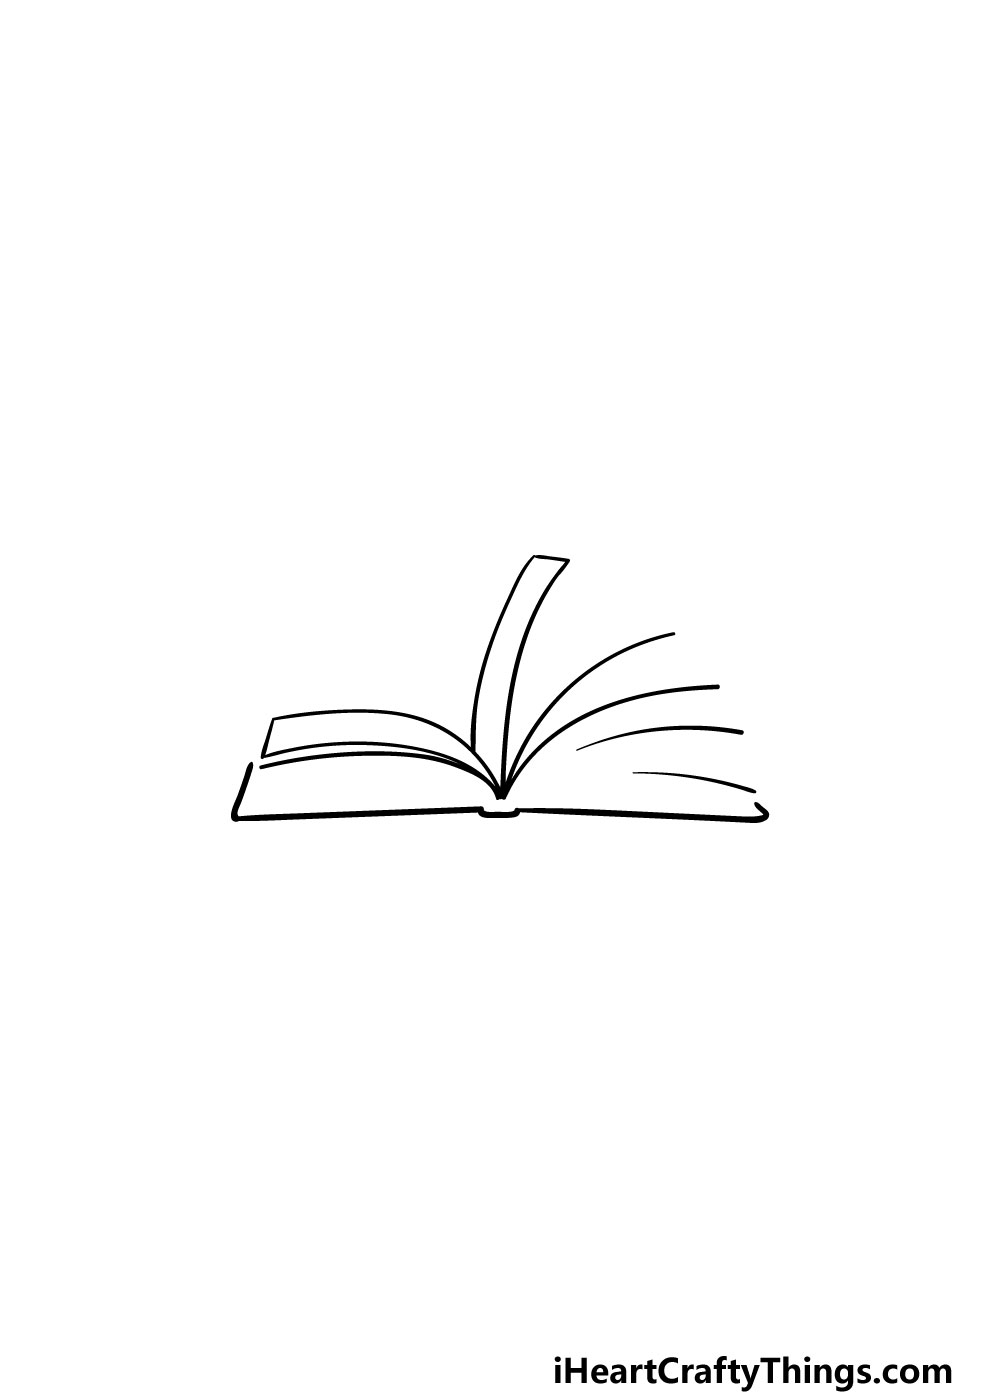 drawing an open book step 2